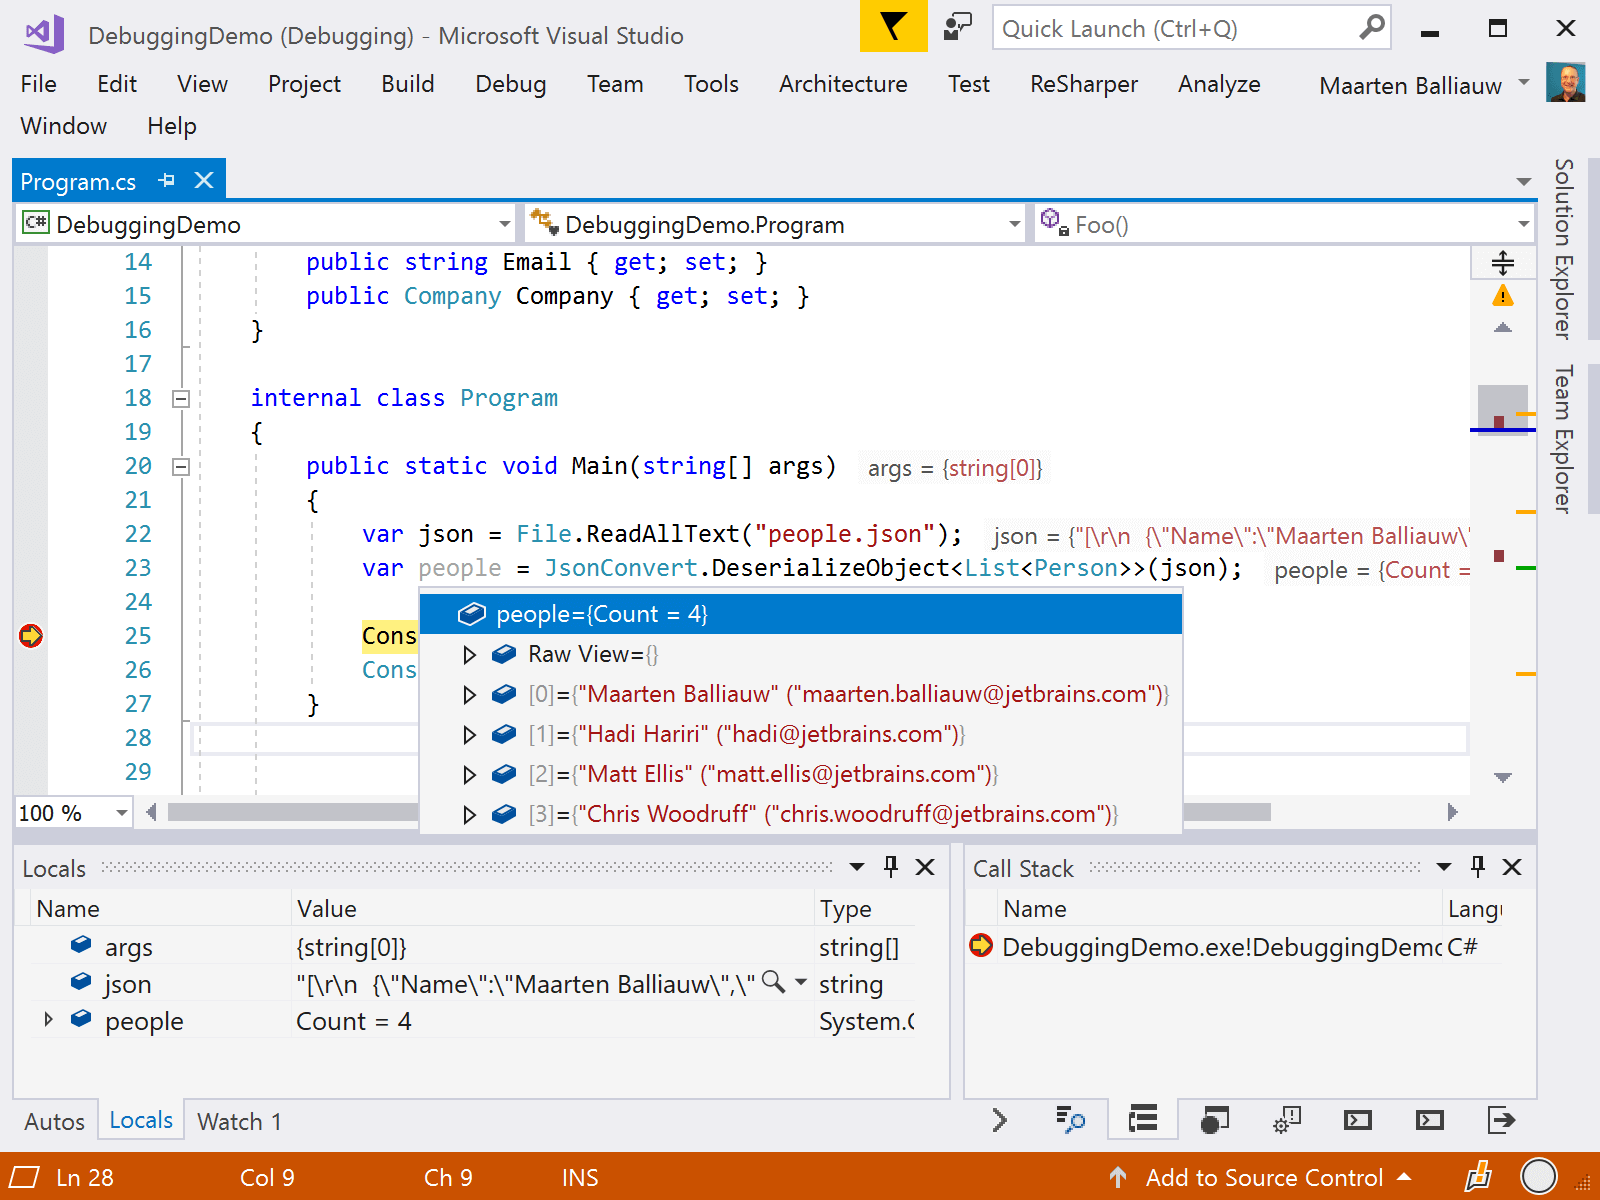 Searchable DataTips in the debugger